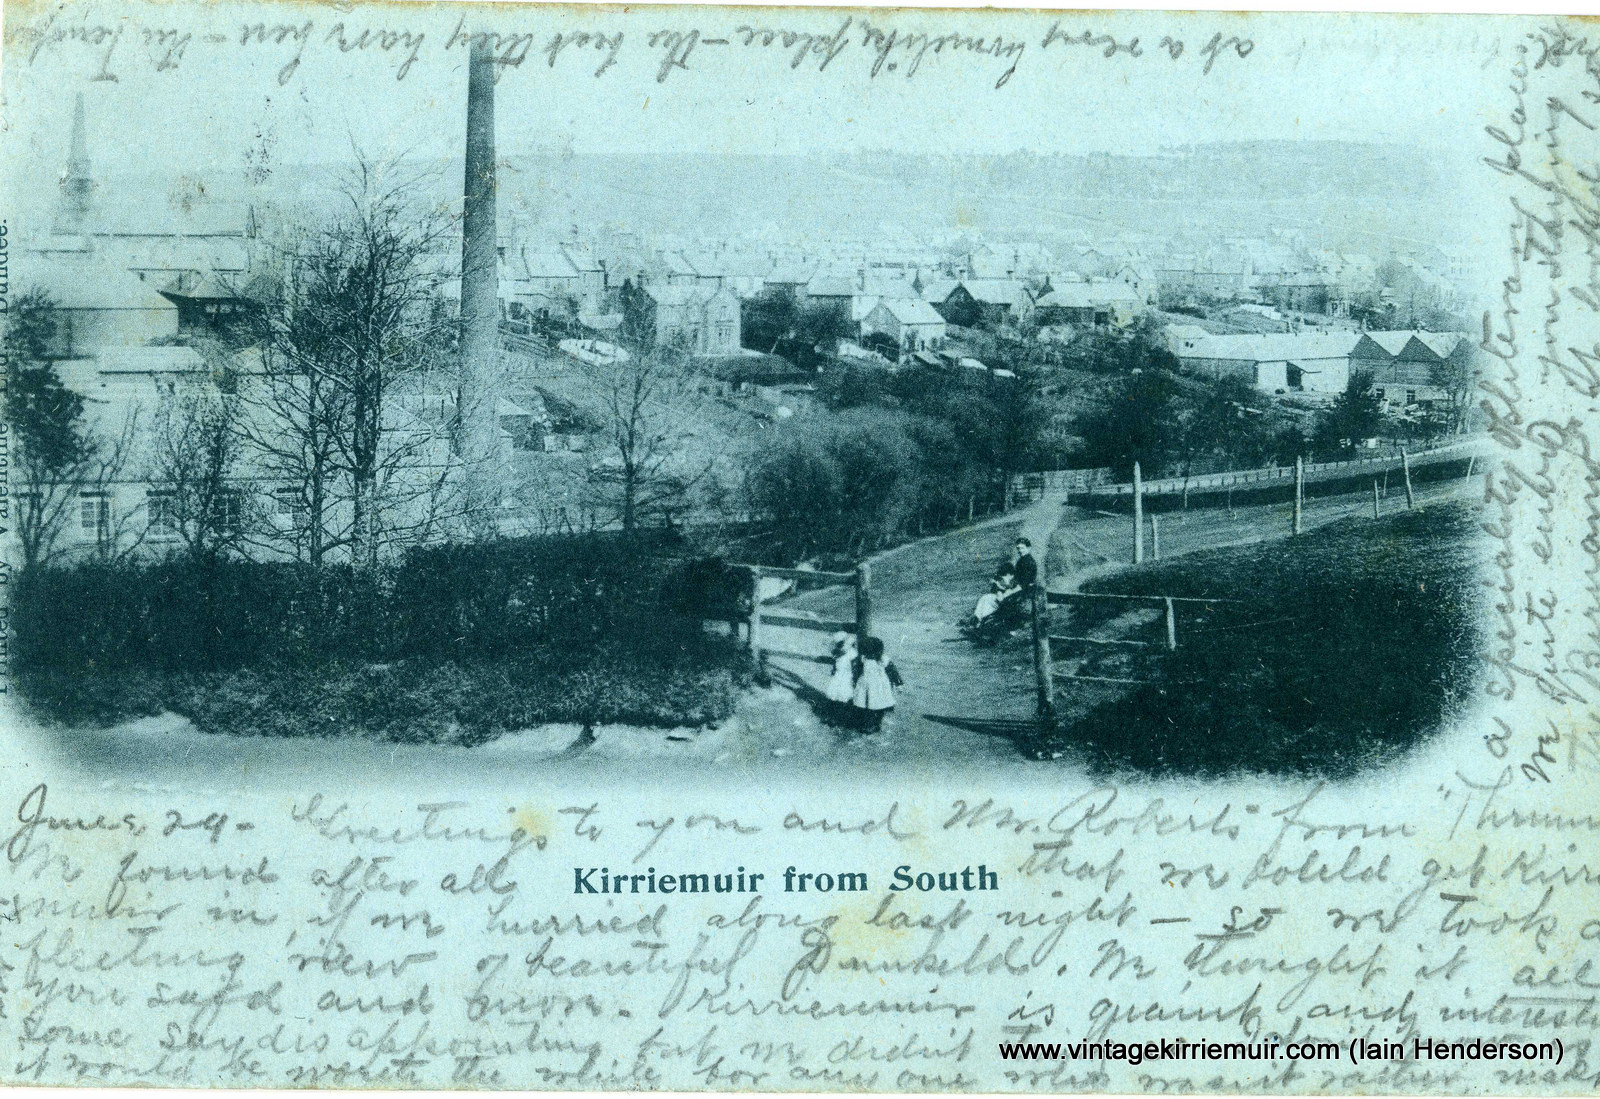 Kirriemuir from South, 1901